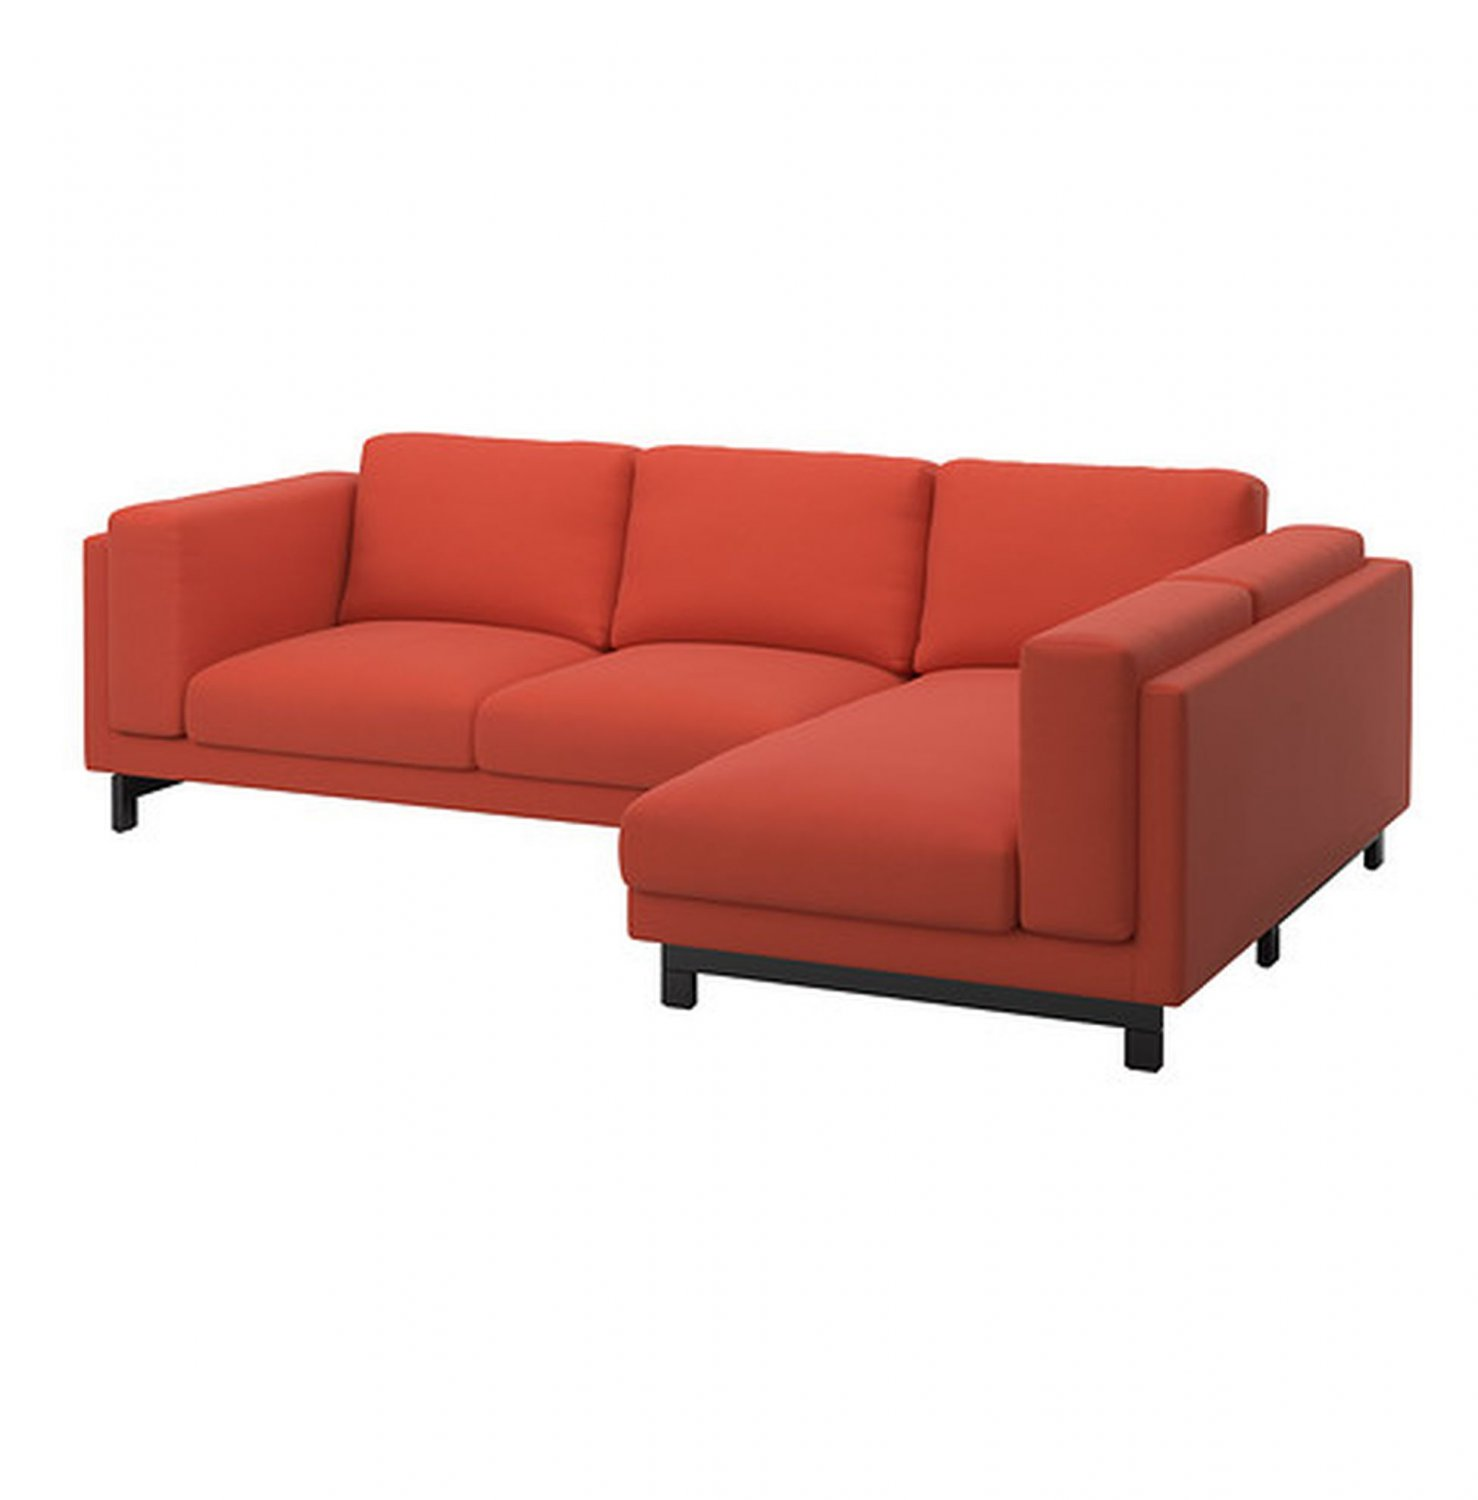 Ikea Nockeby Slipcover Loveseat W Chaise Right Cover